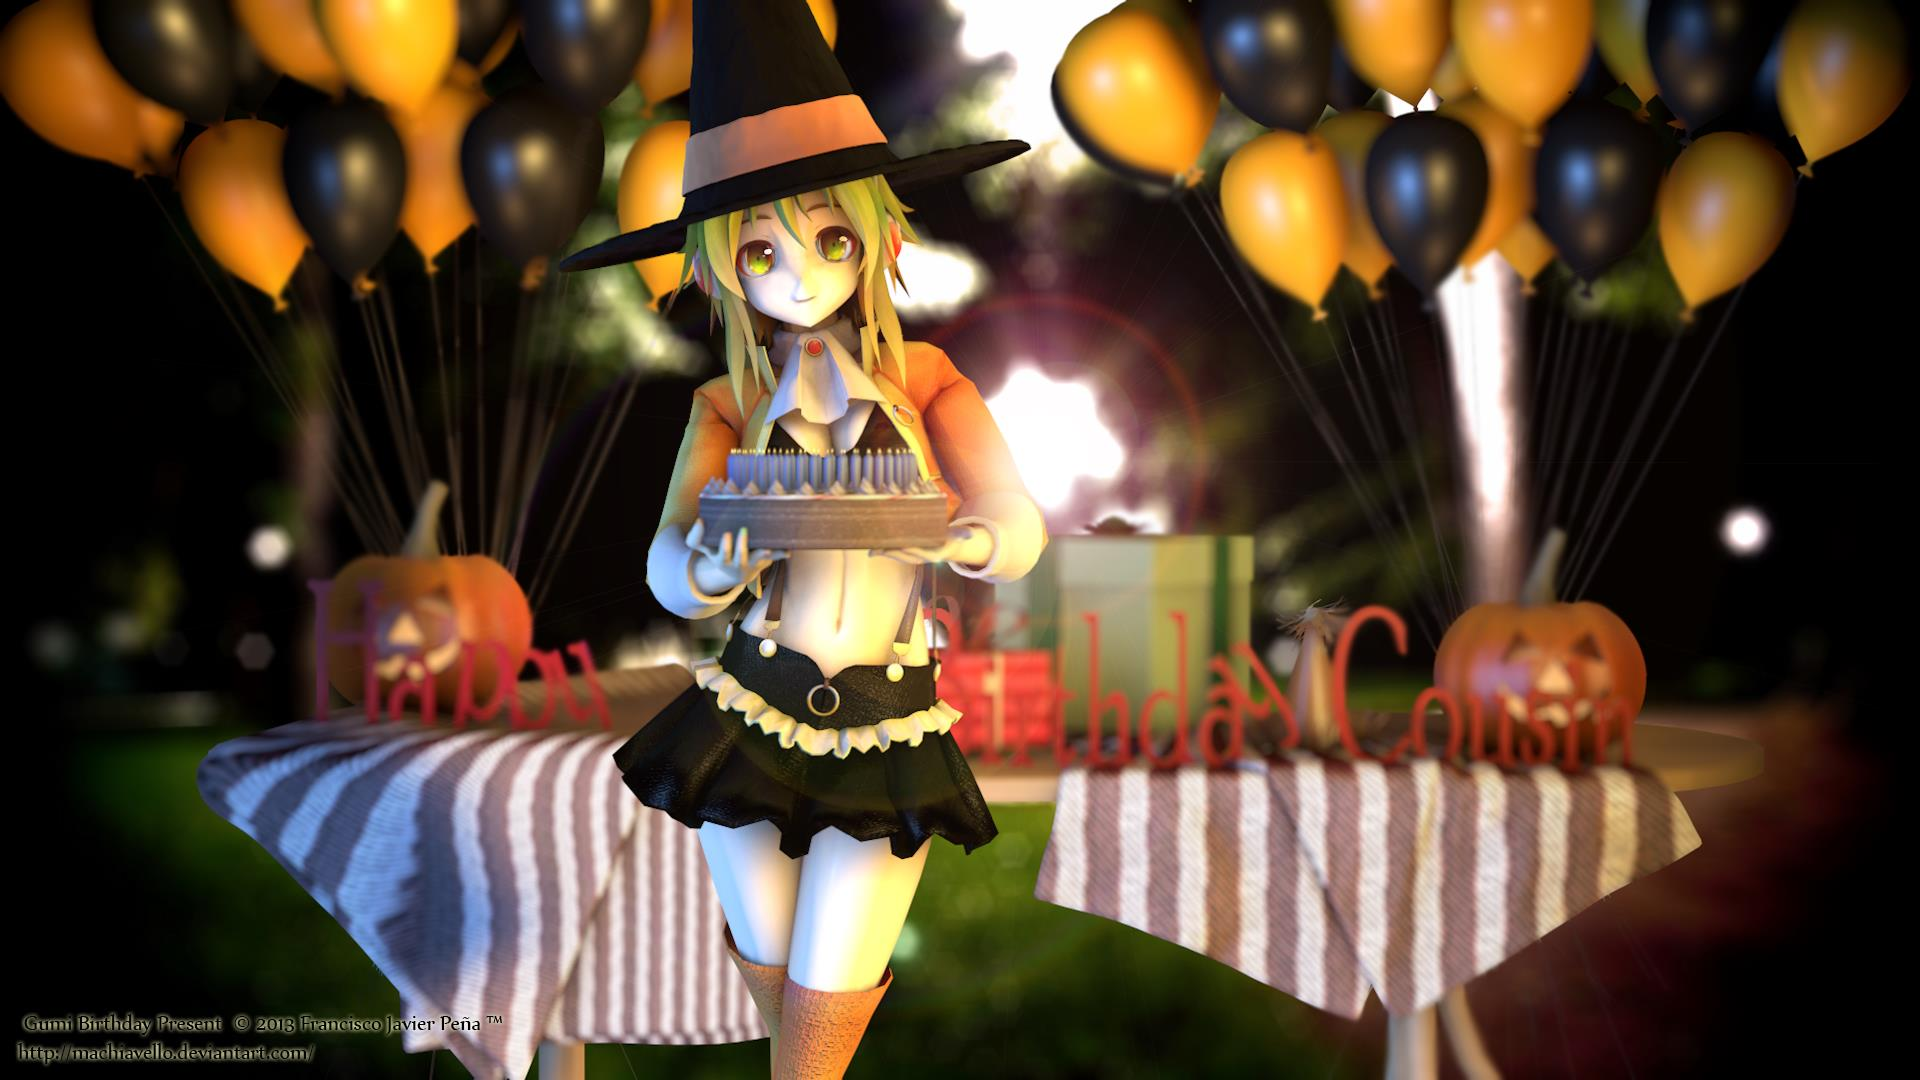 birthday girl wallpaper ; Holidays___Birthday_Girl_with_birthday_cake_051889_